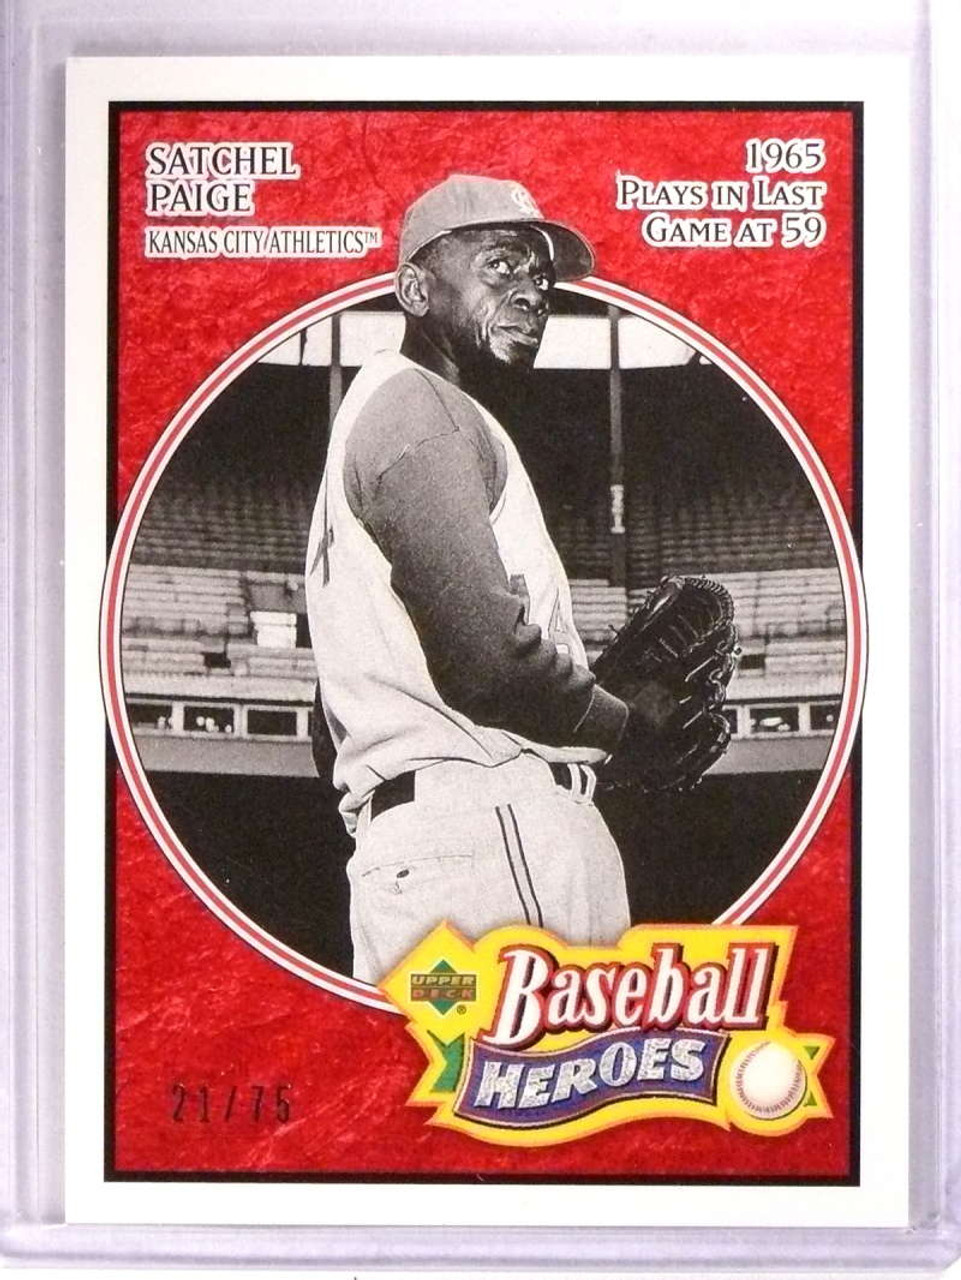 2005 Upper Deck Baseball Heroes Red Satchell Paige D2175 184 71789